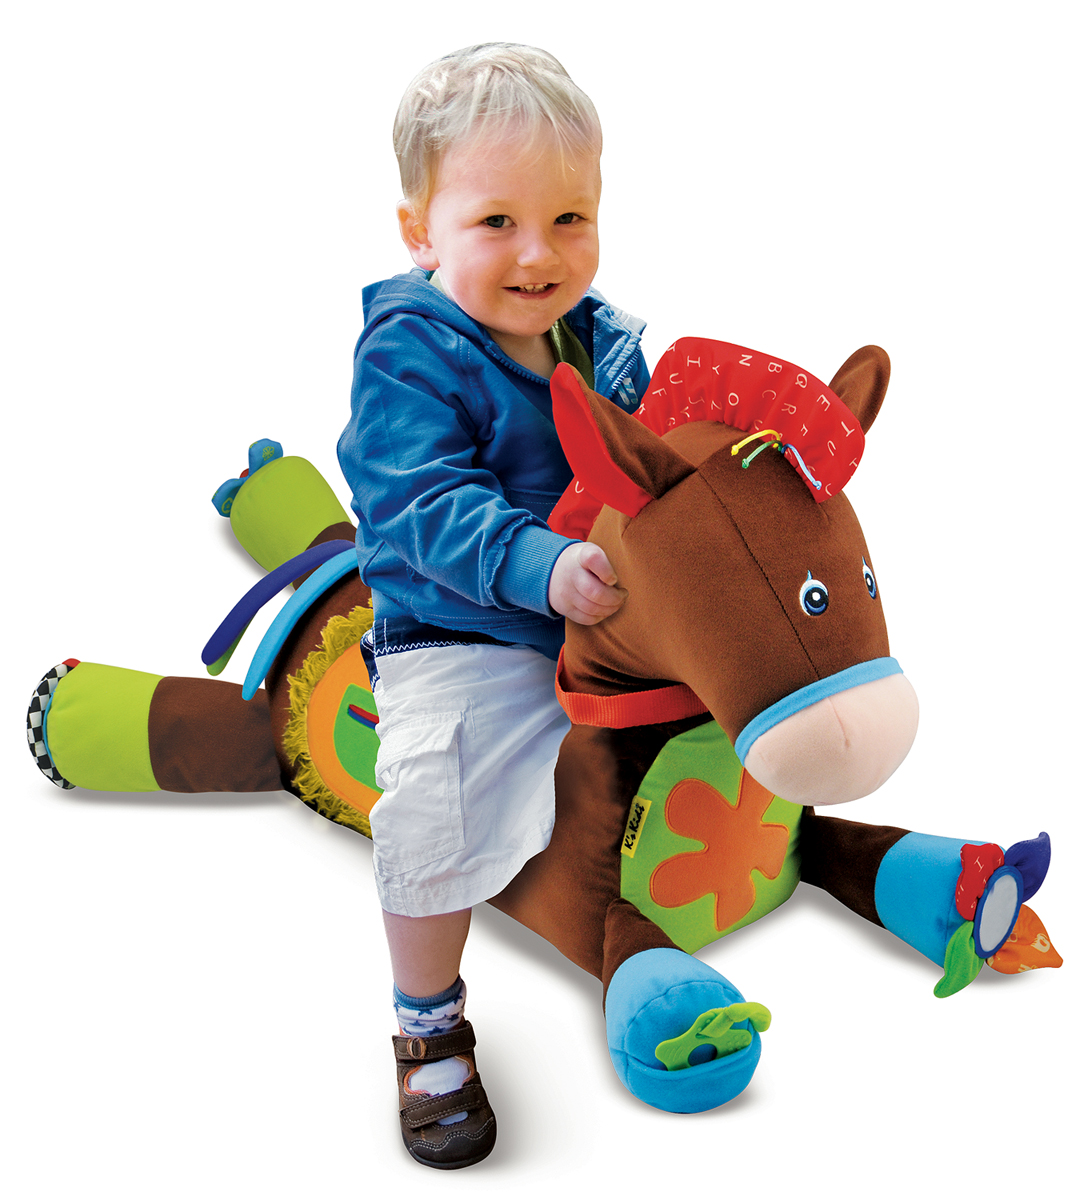 Melissa & Doug Giddy-Up & Play Activity Toy 9222